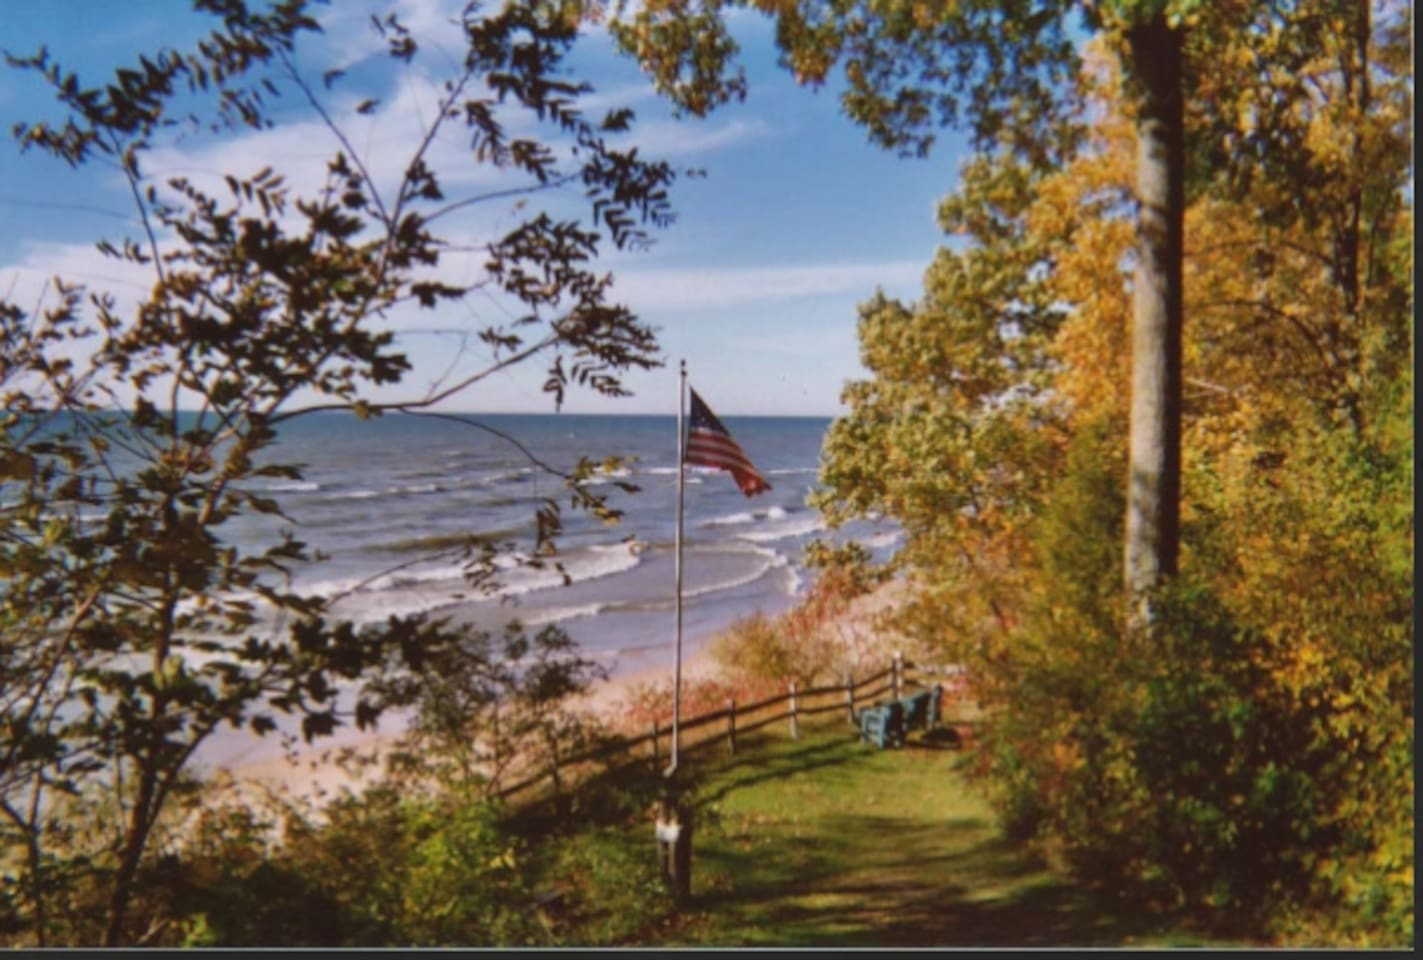 Overlooking our private beach on the shores of Lake Michigan